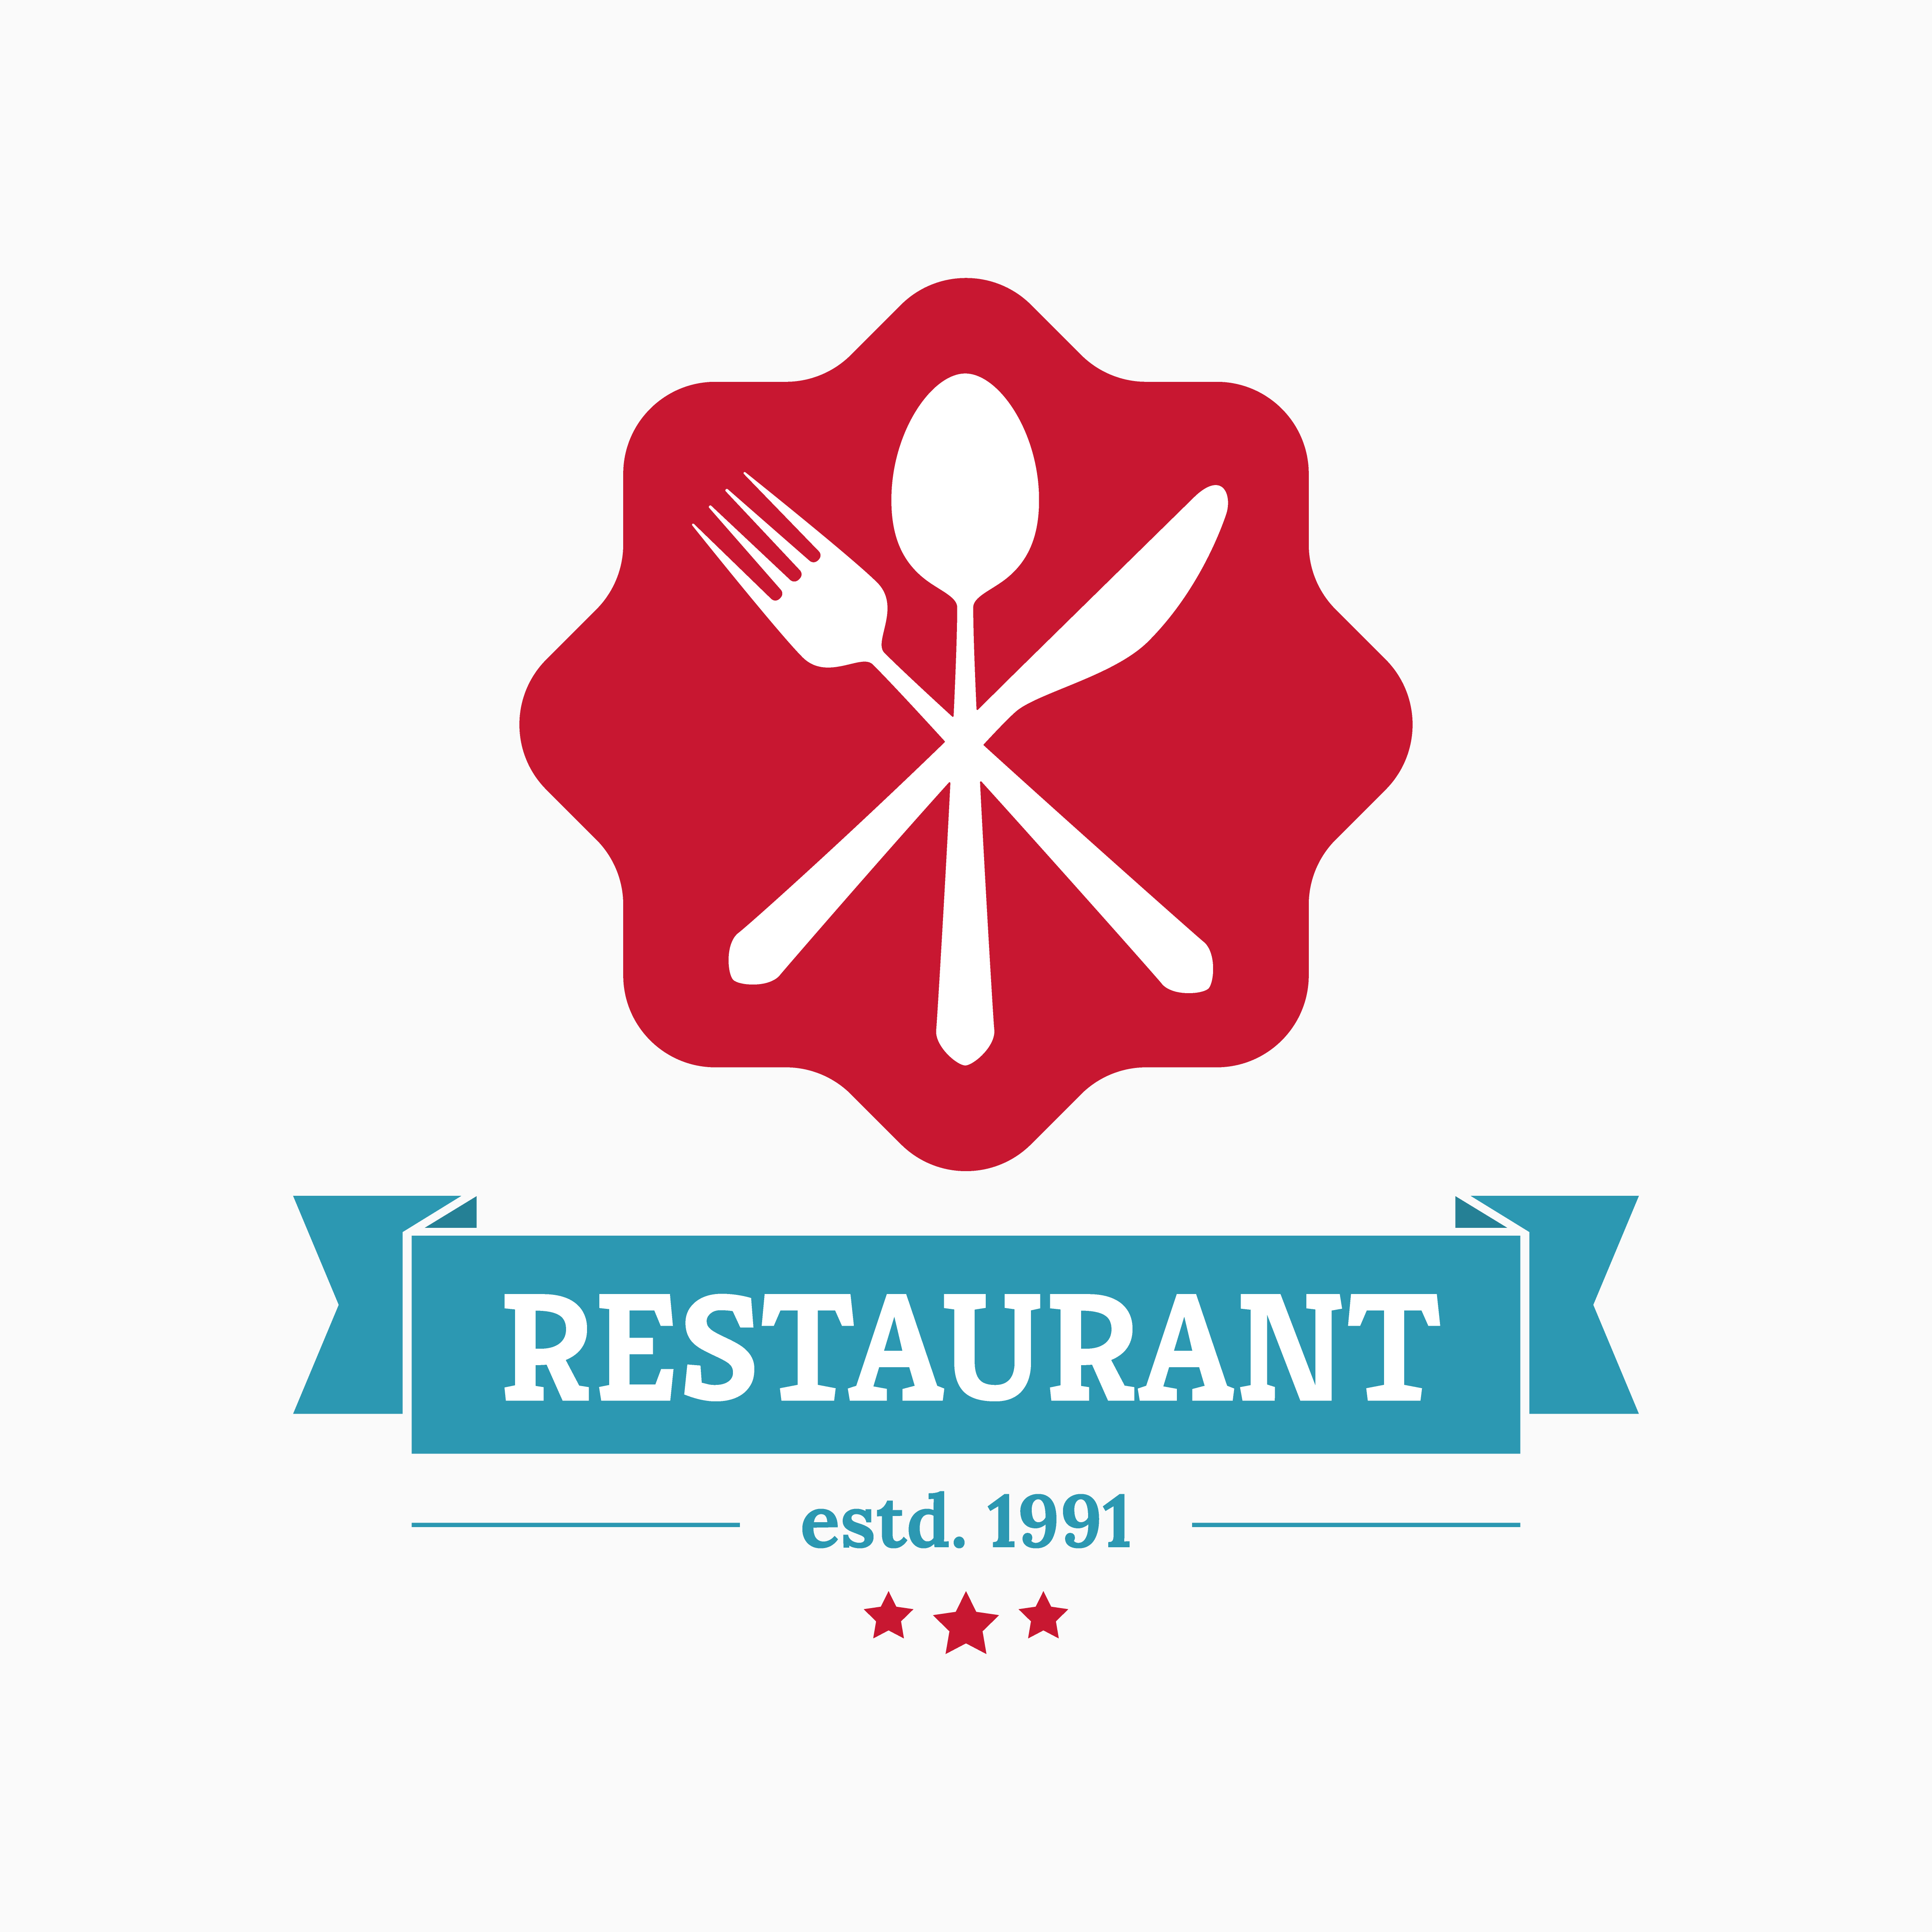 los angeles Restaurant logo design